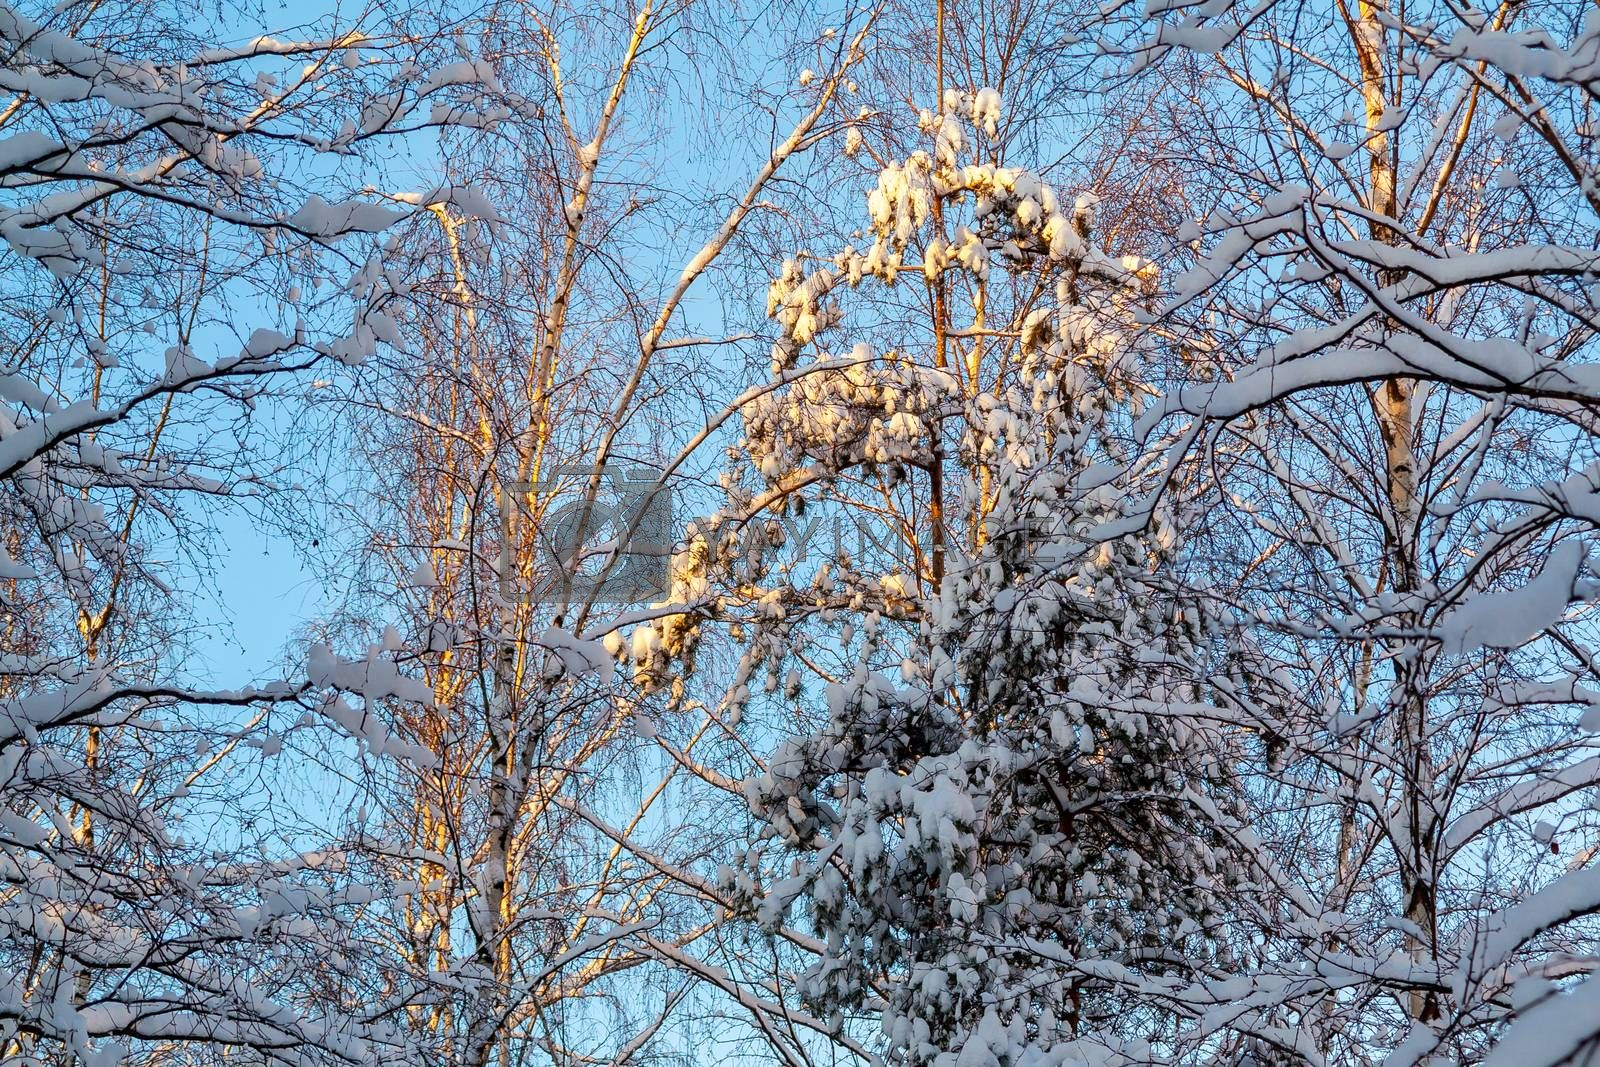 Snow-covered tree branches in the winter forest against the blue sky in the sunset light by galsand